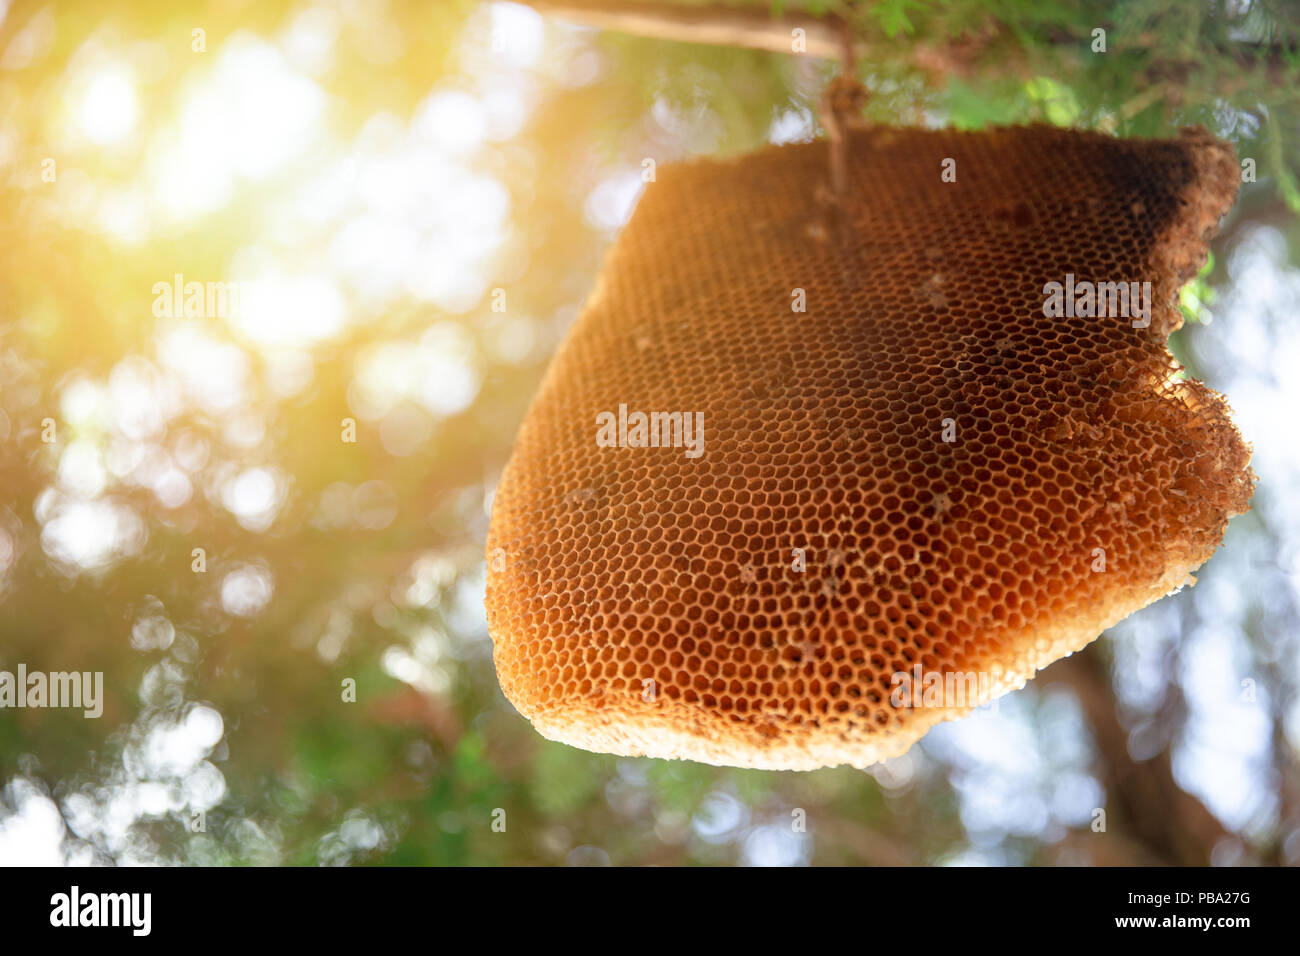 Big Honeycomb or Bee Hive hang on tree nature insect home - Stock Image